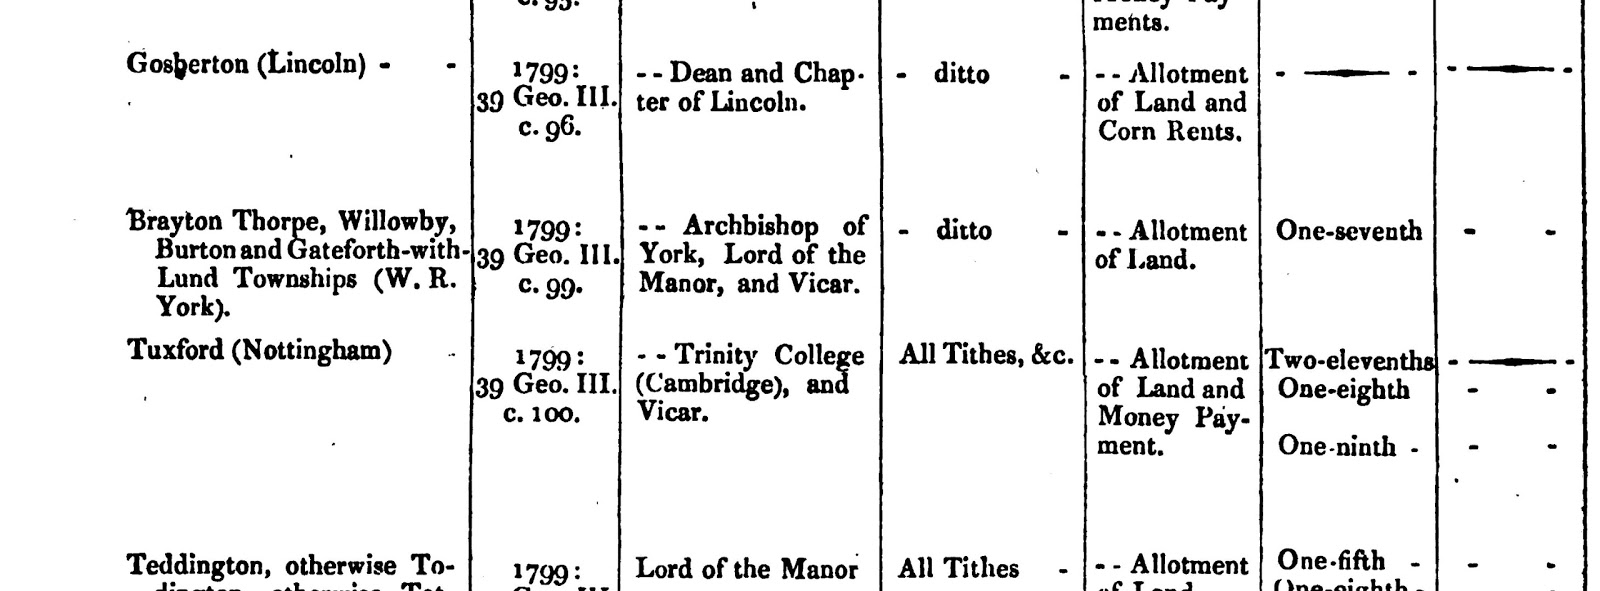 This means that one seventh of the land was set aside for the owner of the  tithes split between the Archbishop, Lord of the manor and the vicar.